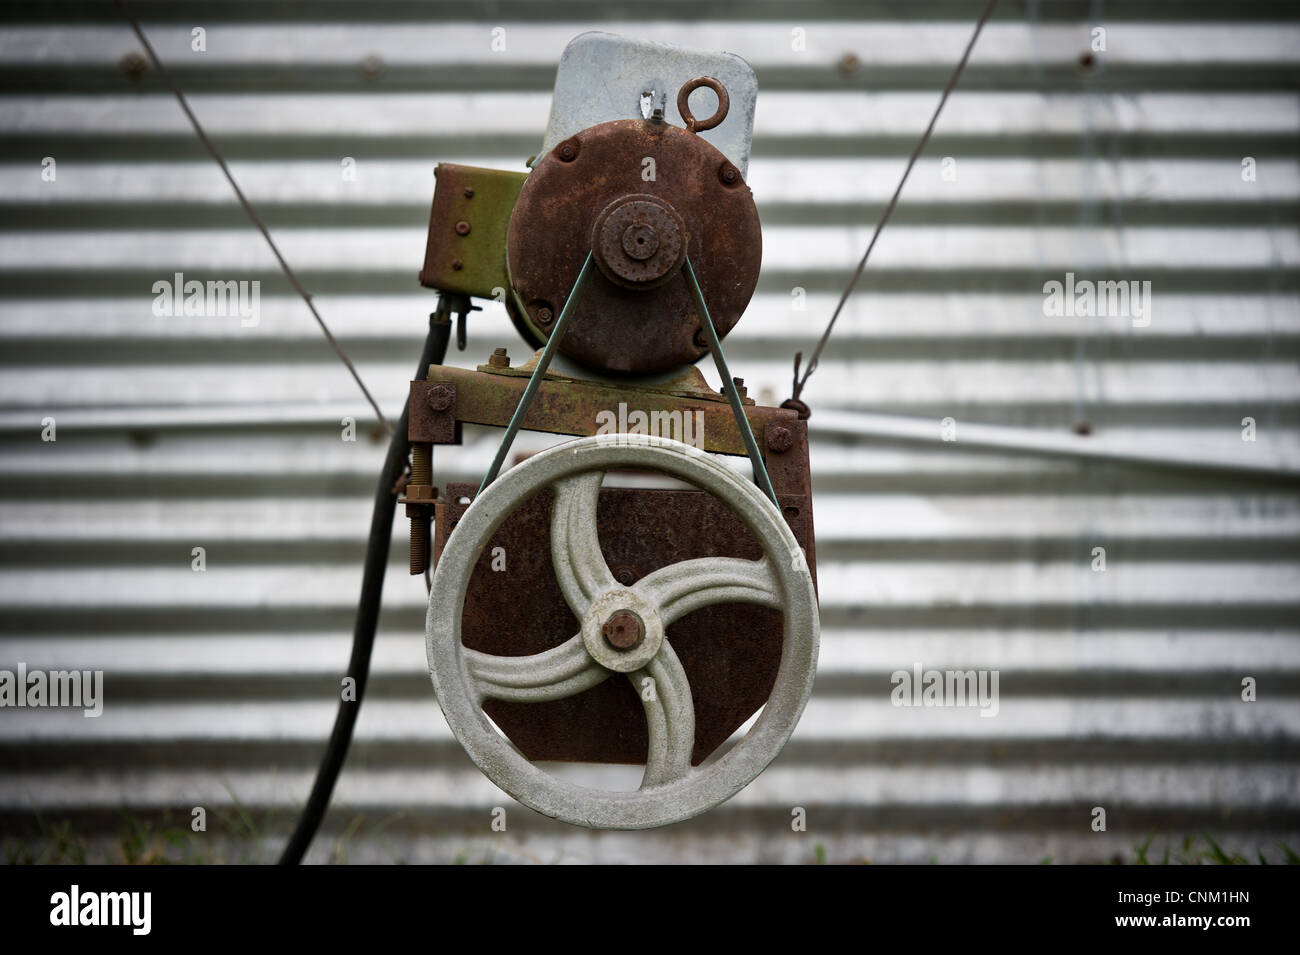 Electric motor pulley rig system for wiring on a farm in front of ...